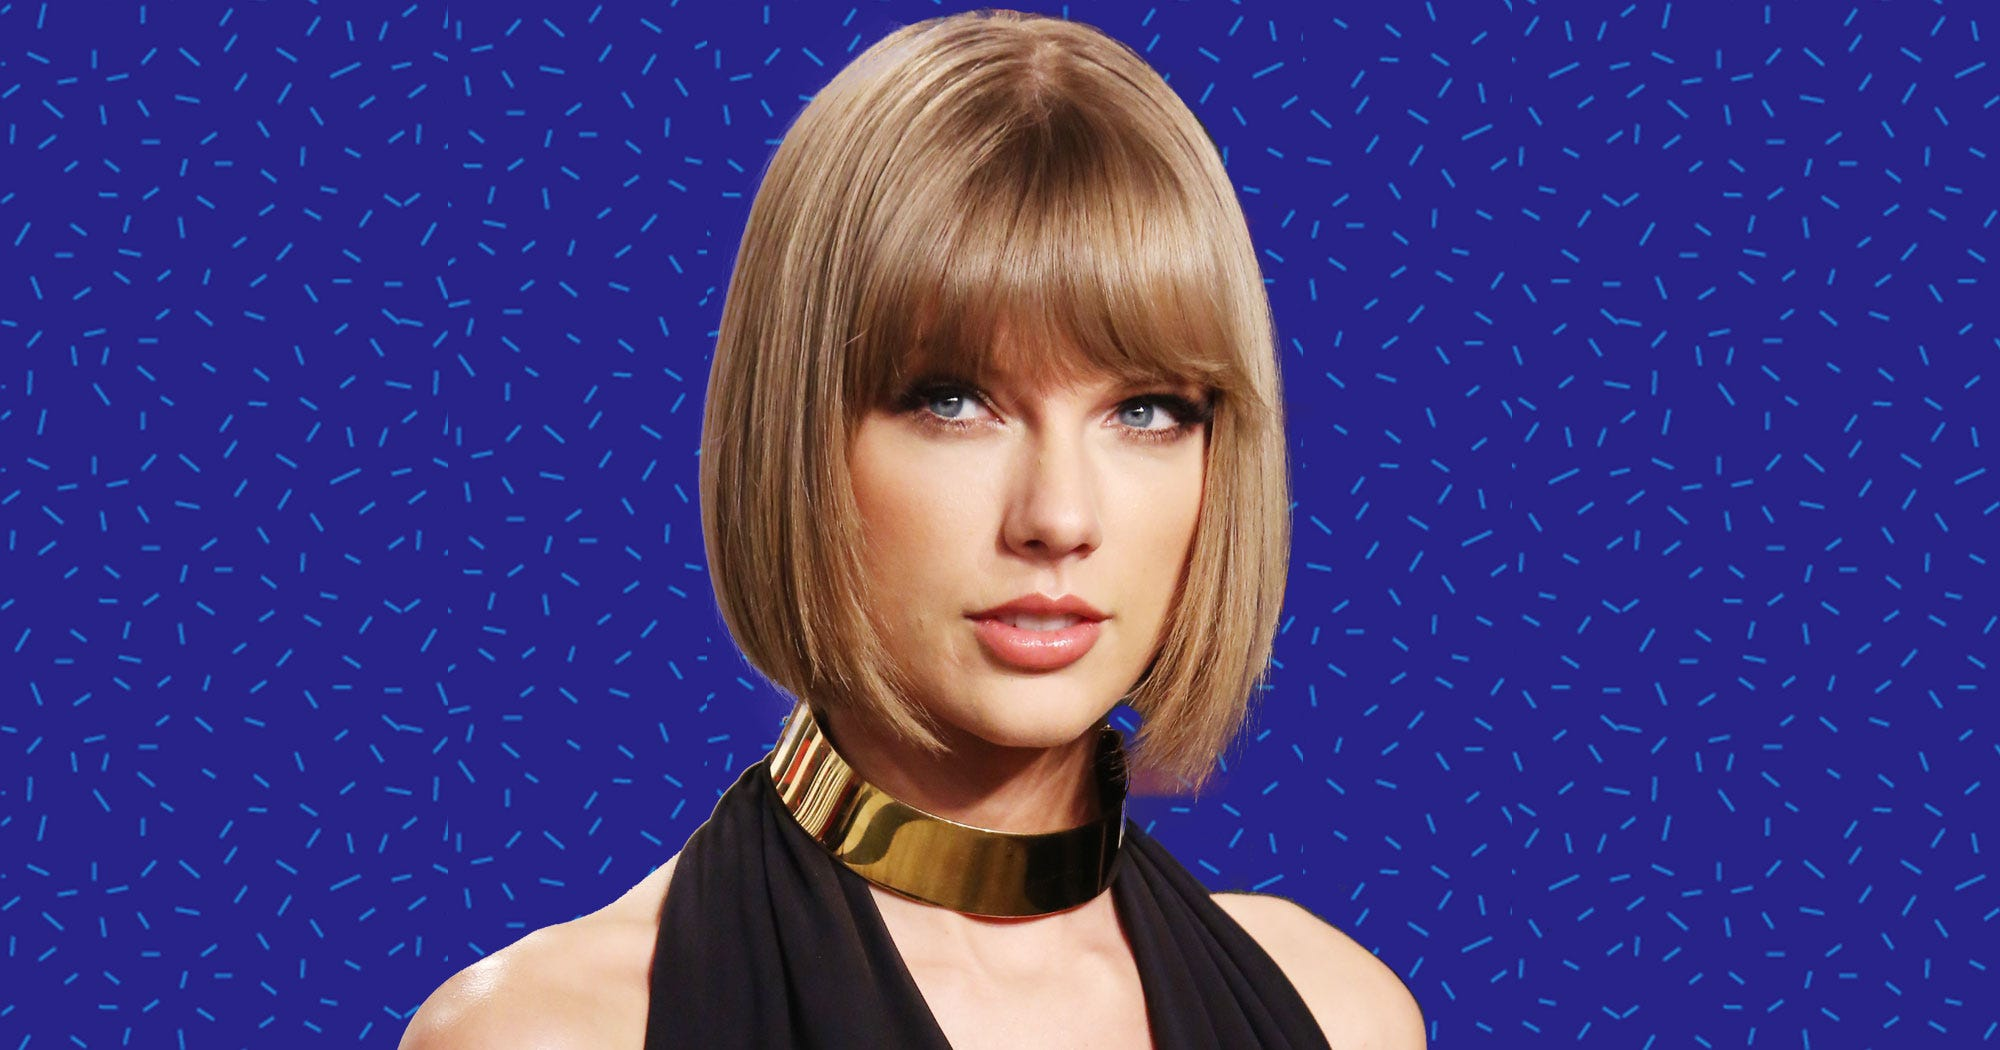 situation analysis on taylor swift's wonderstruck Situation analysis on taylor swift's wonderstruck fragrance essay situation analysis on taylor swift's wonderstruck more about cottle-taylor analysis essay.